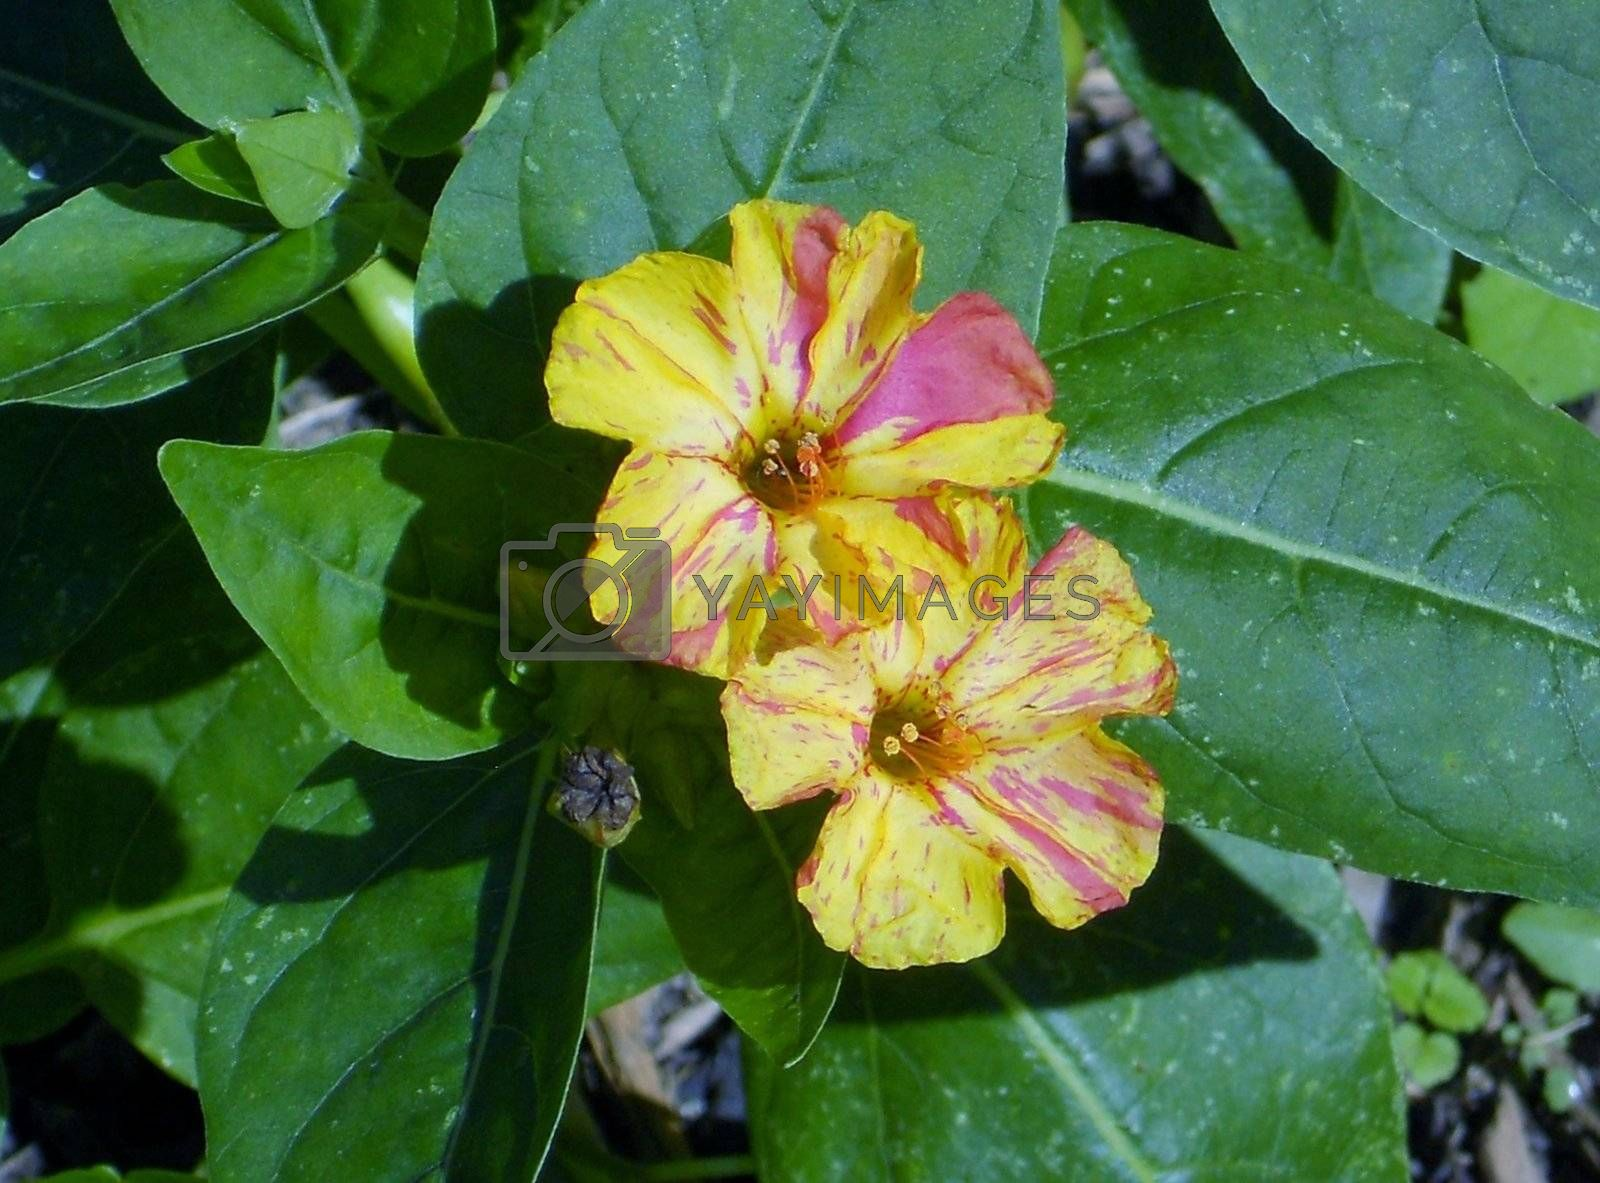 An unusual yellow and pink mix variety of traditional red Four O'Clocks